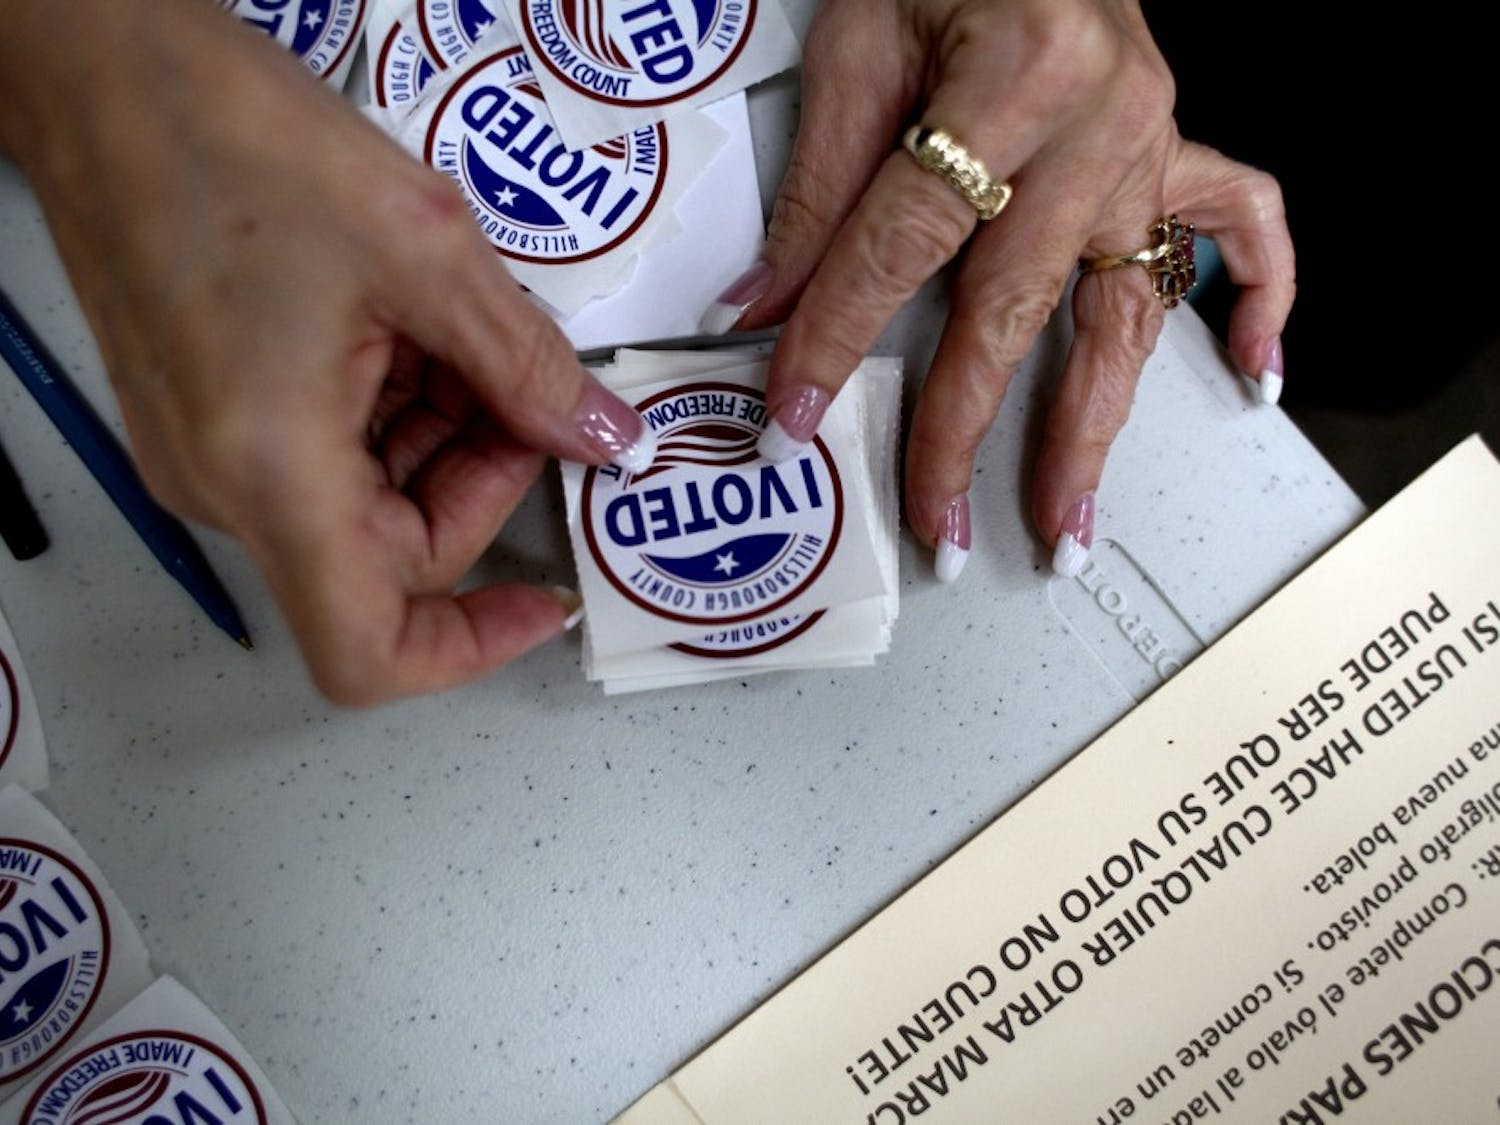 """A poll worker gets """"I Voted"""" stickers ready to hand to voters as they finished up at the ballot booths at Jan Kaminis Platt Regional Library in South Tampa, Fla., on November 6, 2012. (Carolina Hidalgo/Tampa Bay Times/TNS)"""